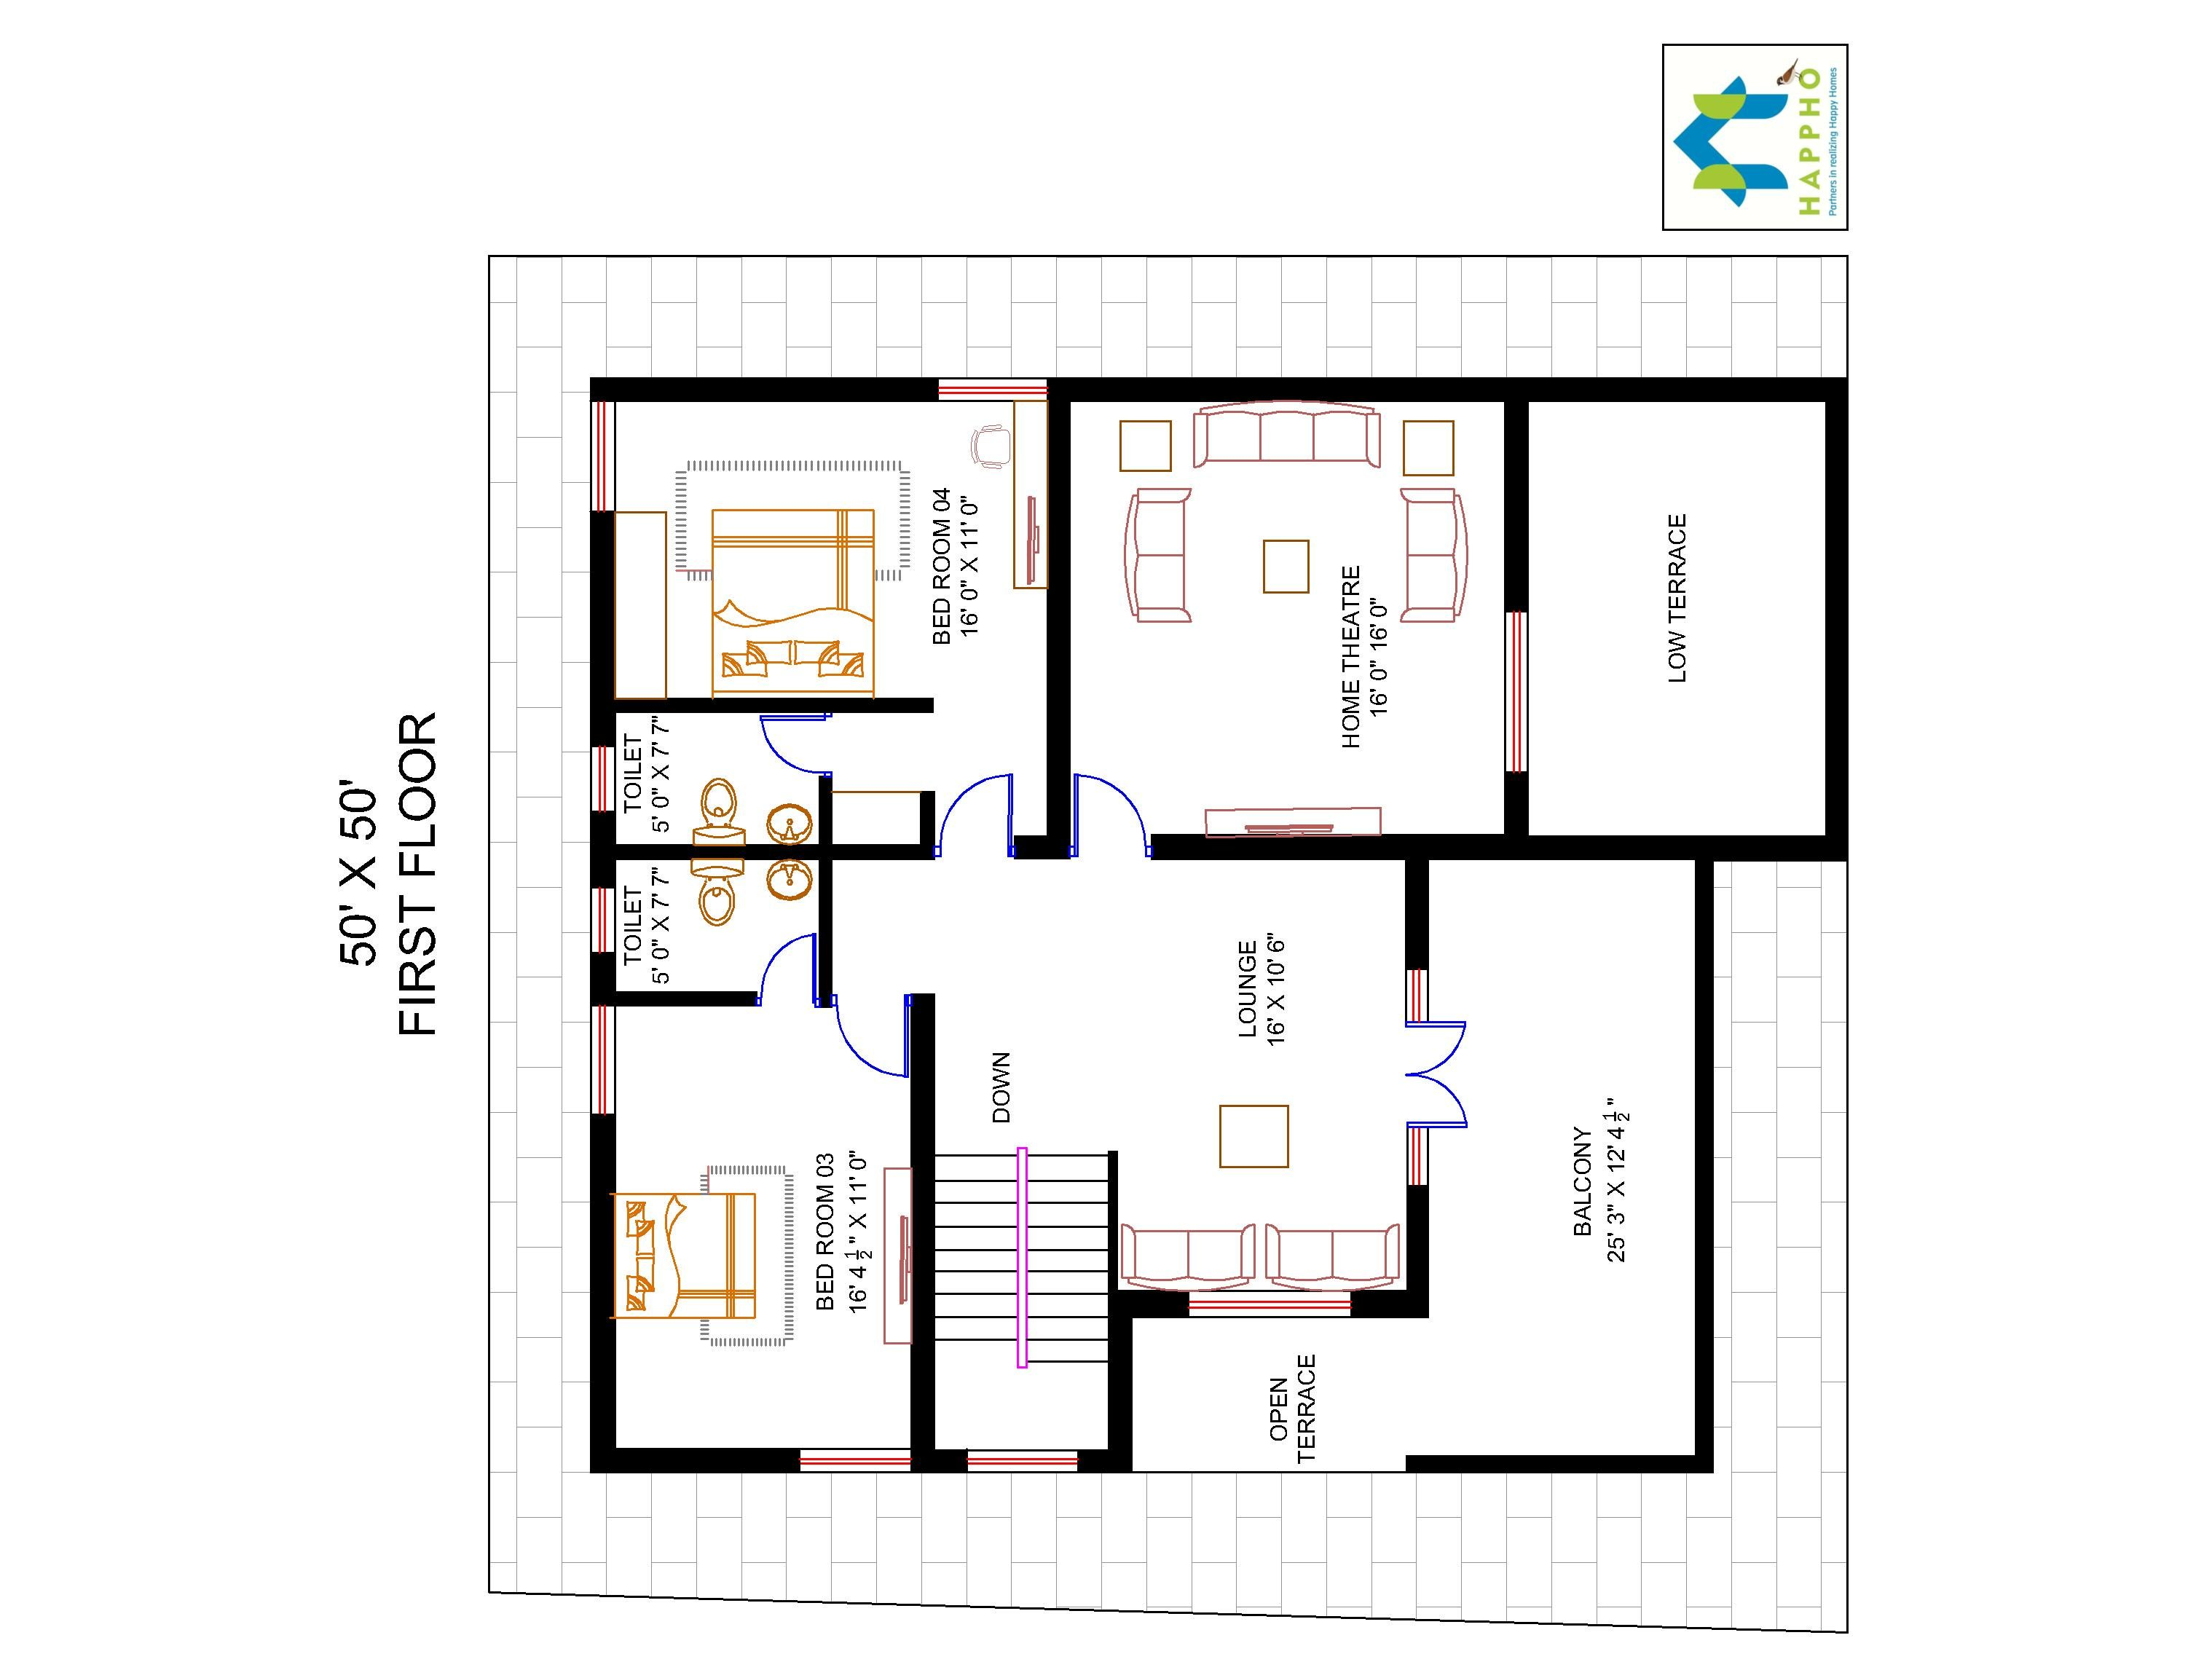 2500 sq ft bungalow floor plans for 2500 sq ft ranch house plans